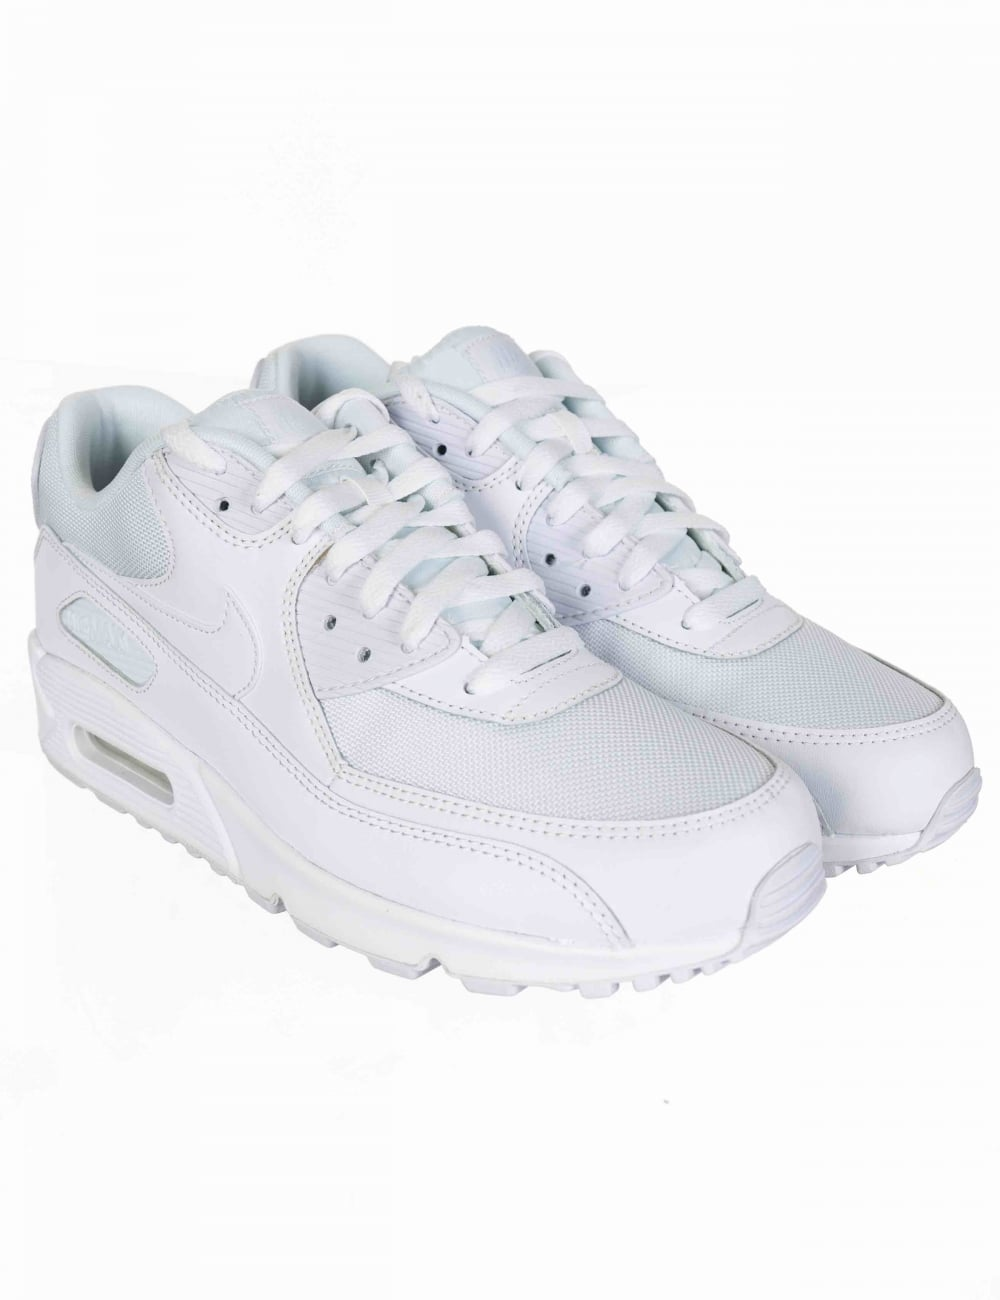 quality design 96251 8a4cd Air Max 90 Essential Shoes - White/White